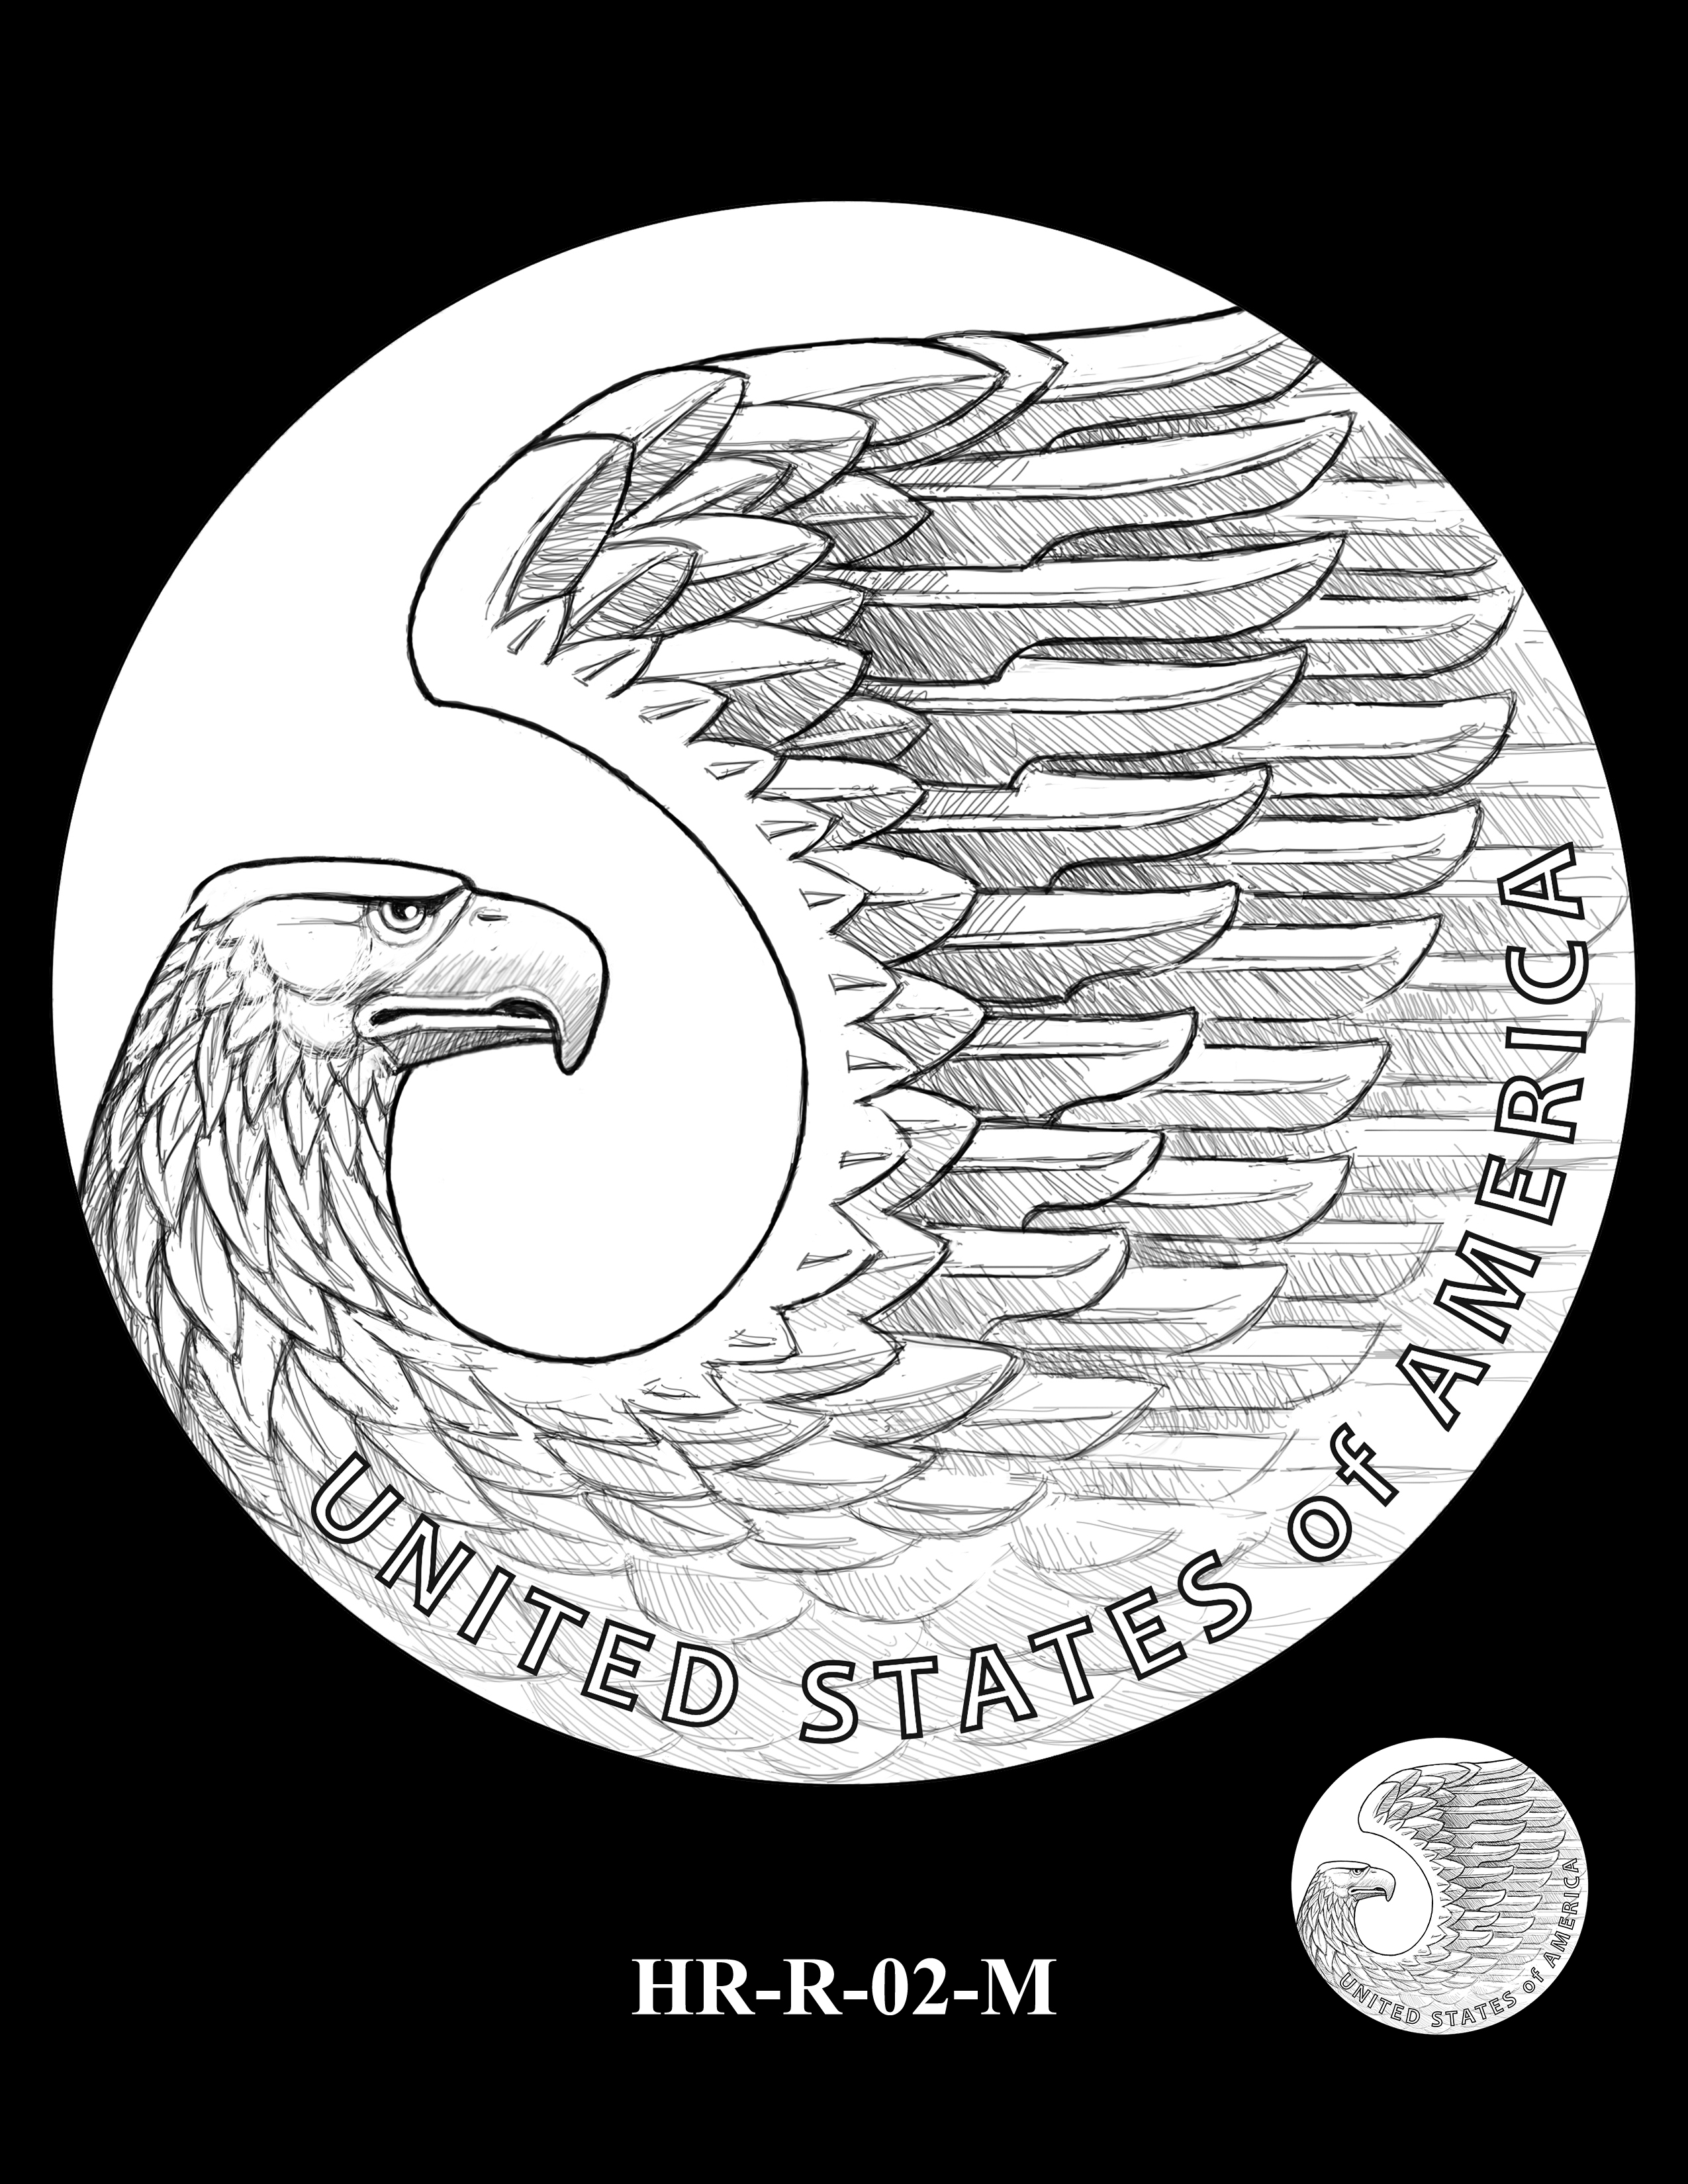 HR-R-02-M - 2017 American Liberty High Relief Gold Coin and Silver Medal Program